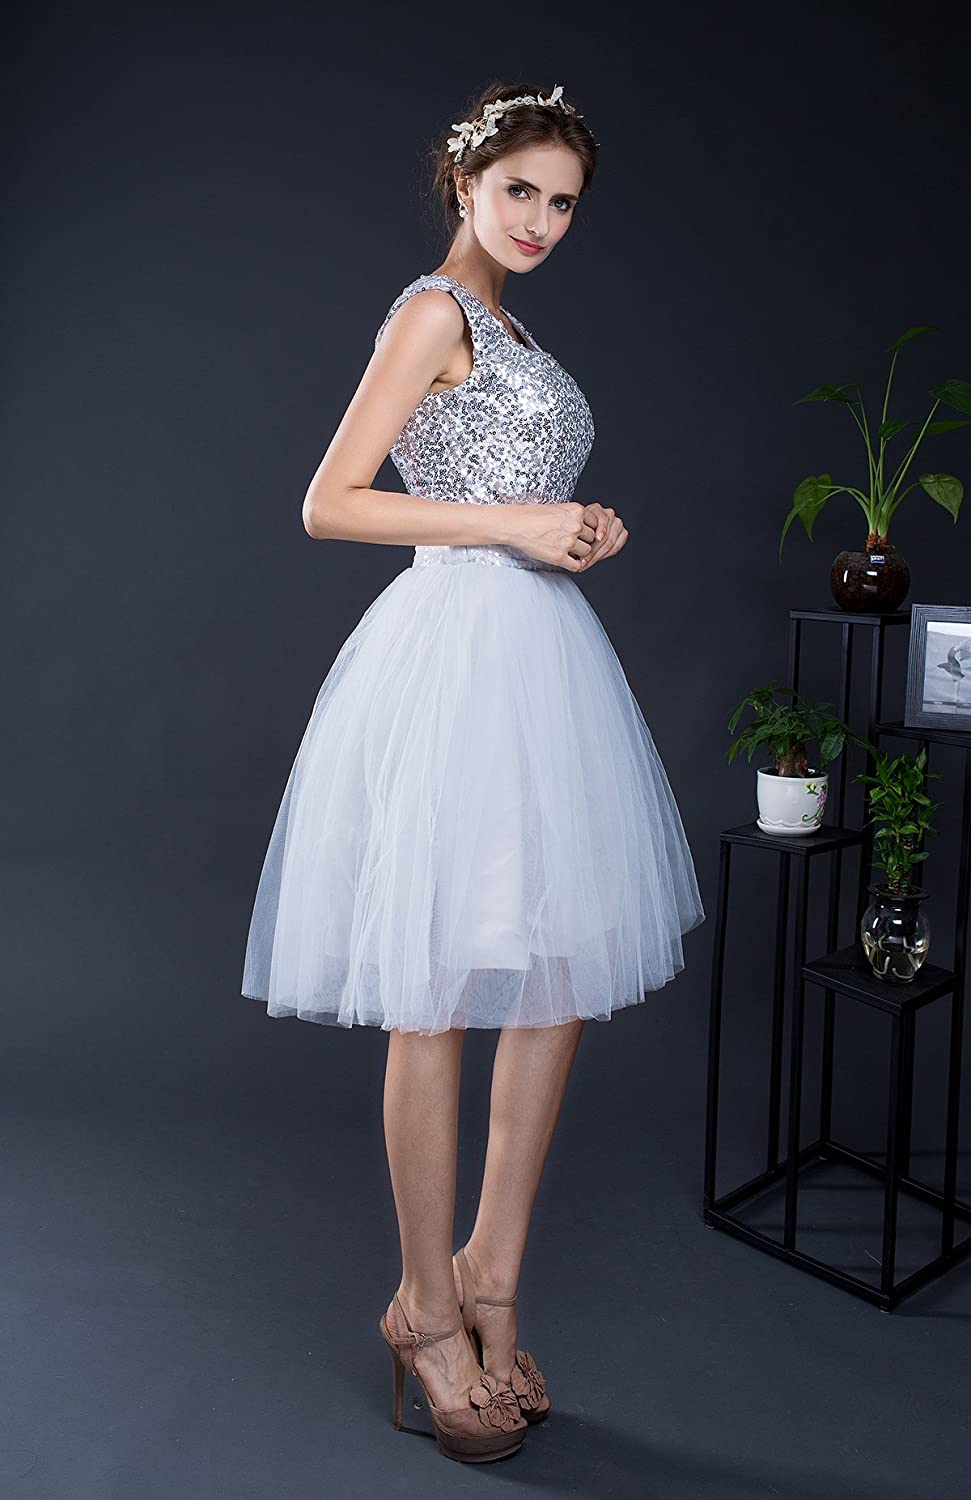 KekeHouse?Bridesmaid Wedding Short with Straps Dress Party Dress Sequin for Women Party Dress Evening Cocktail A-Line Prom Dance Dress Lace Up Back